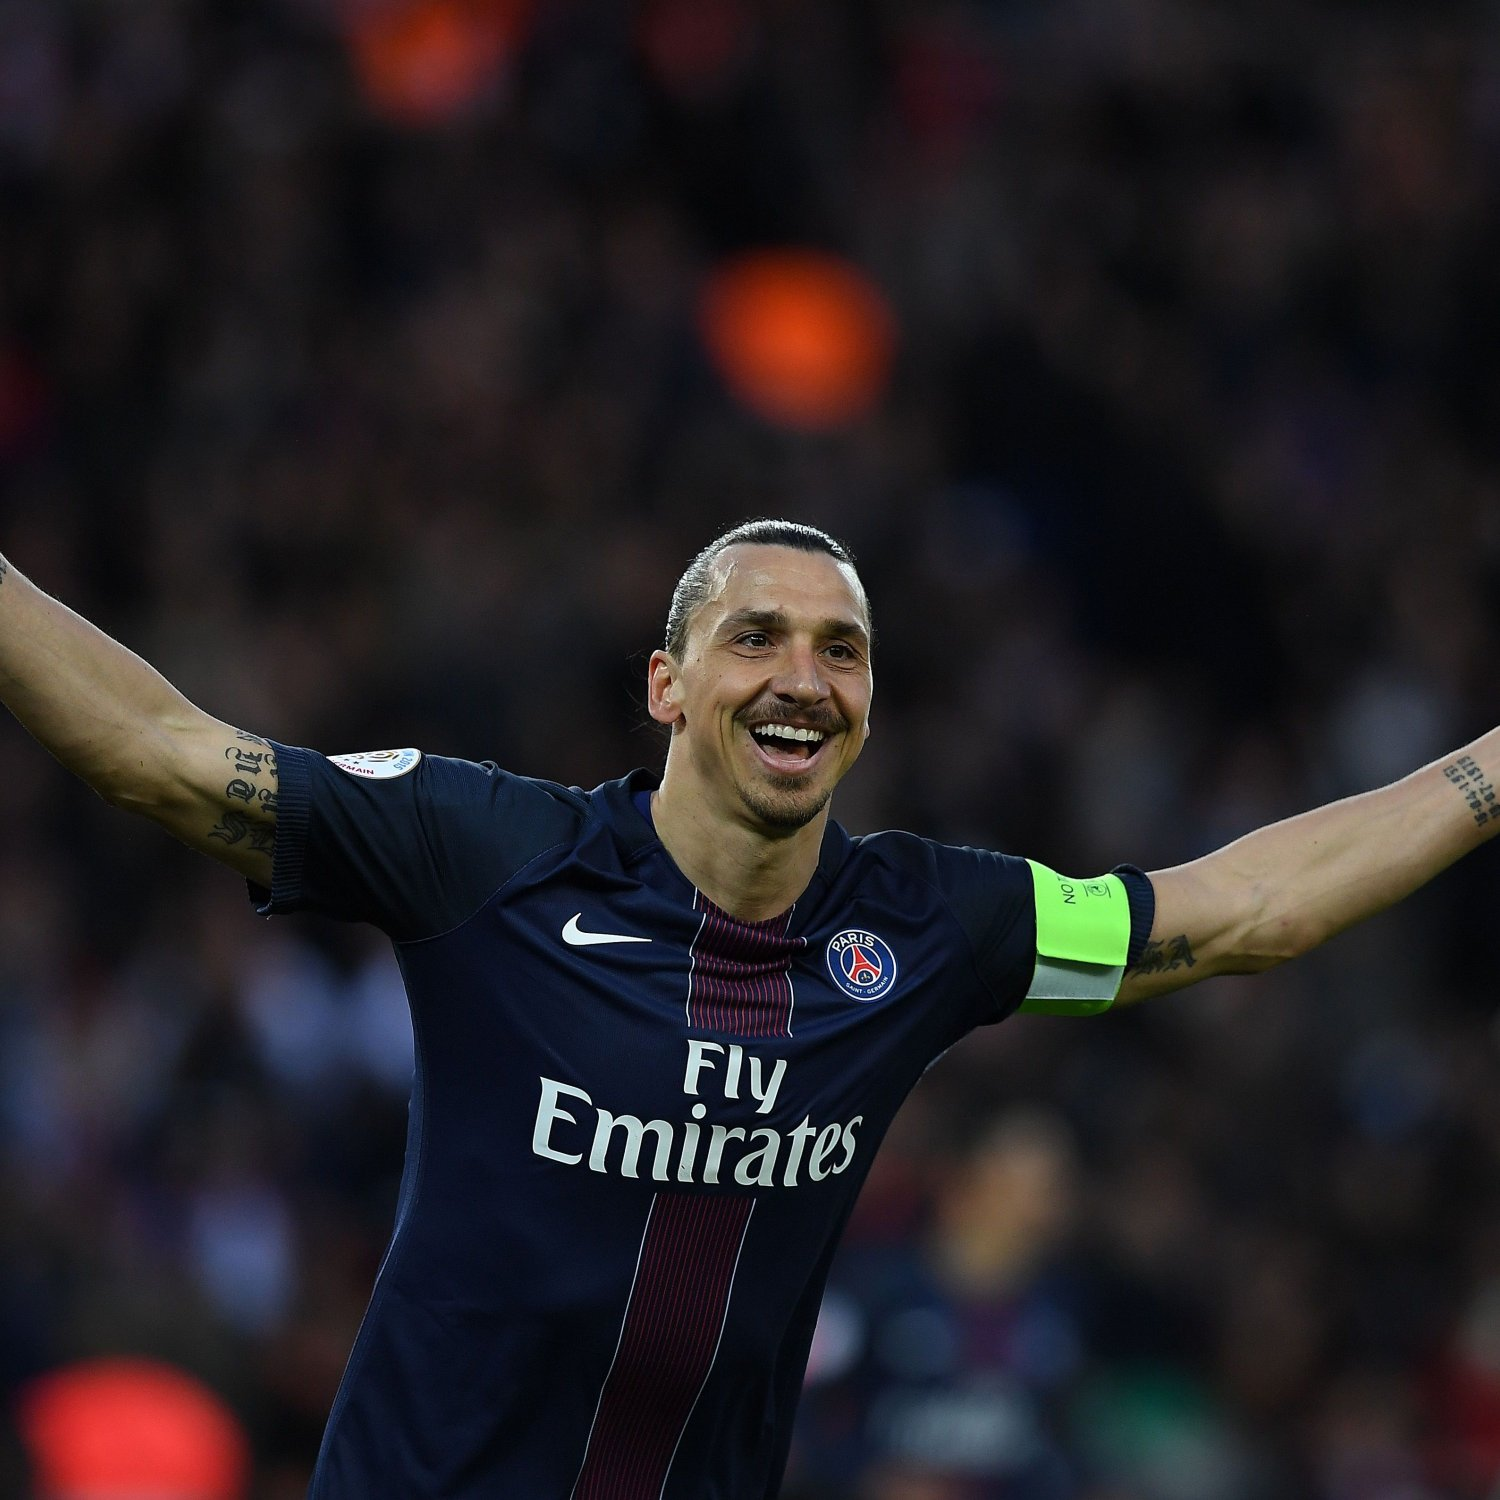 PSG vs. Nantes: Winners and Losers from Ligue 1 Match | Bleacher Report